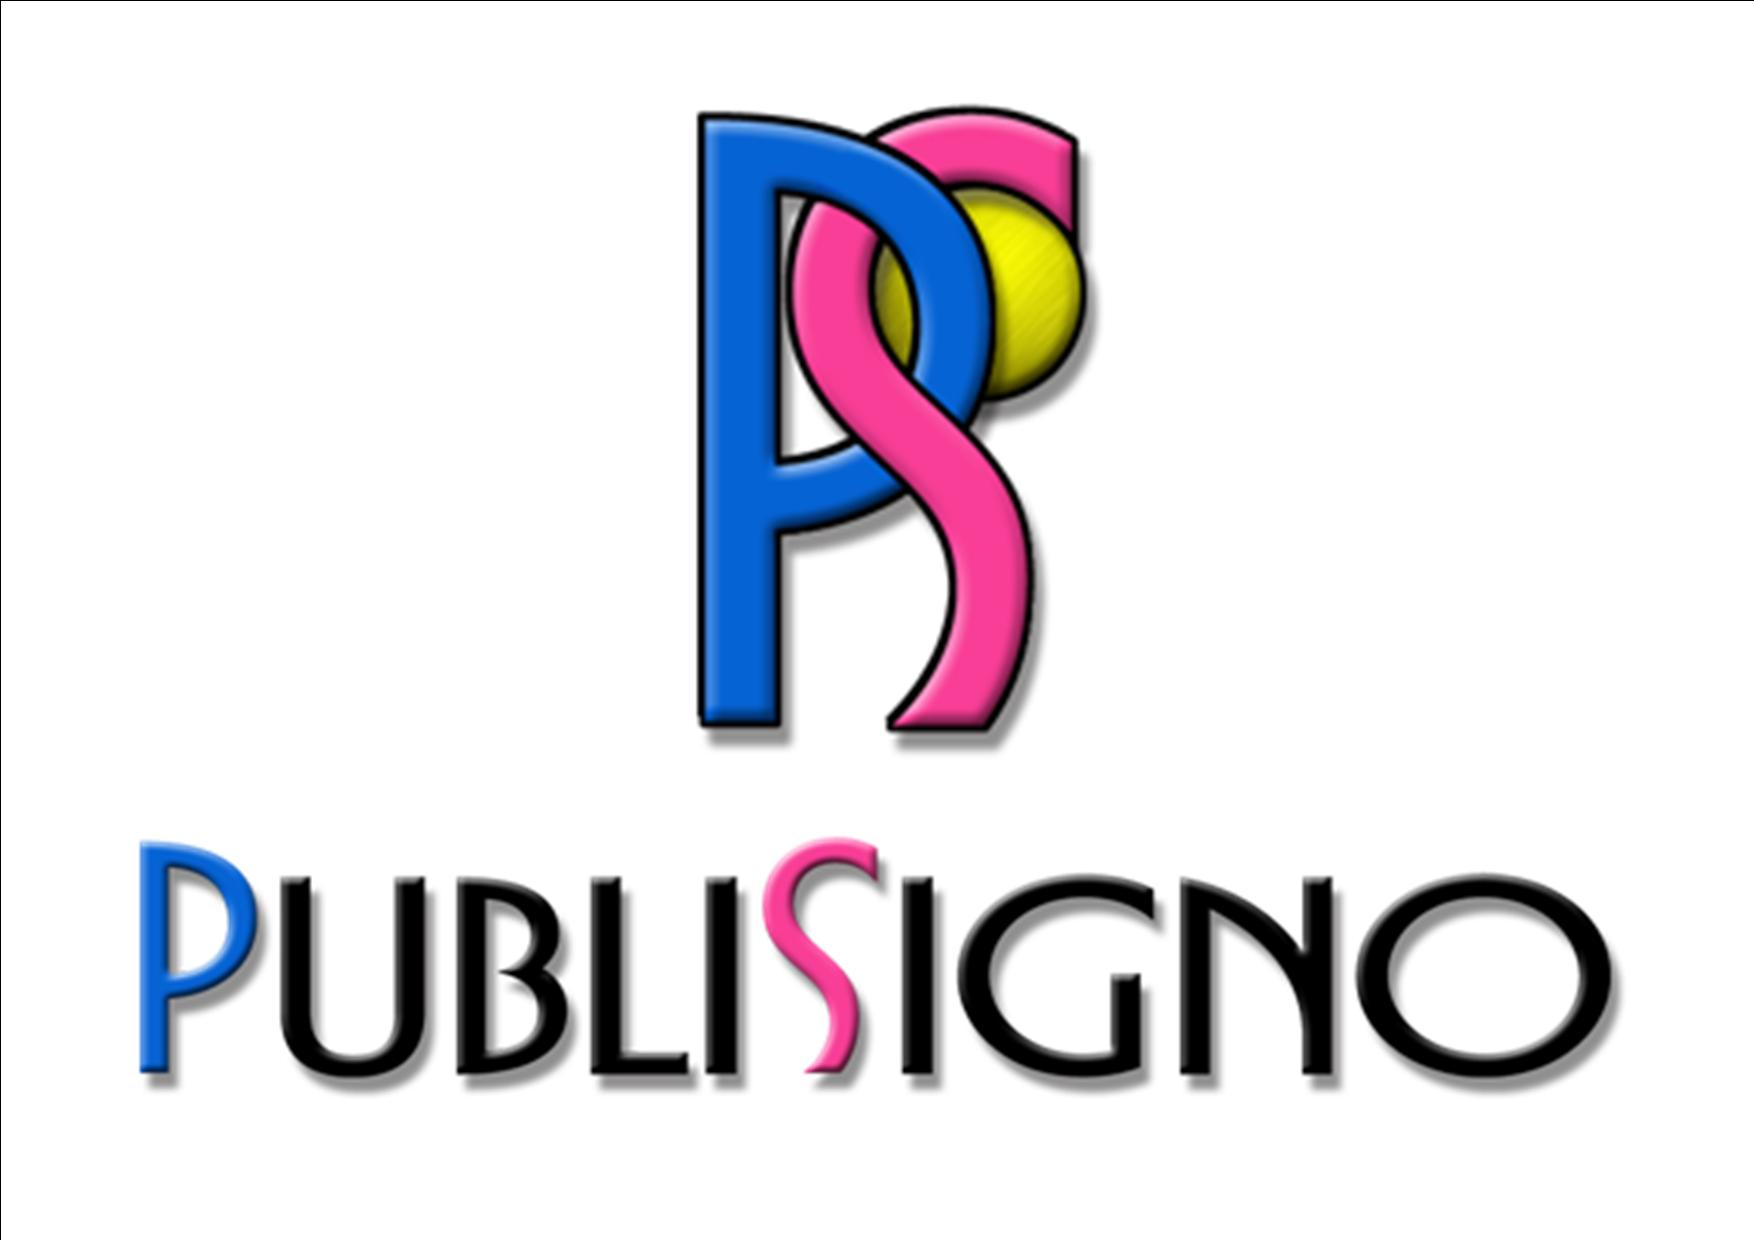 Logotipo Publisigno